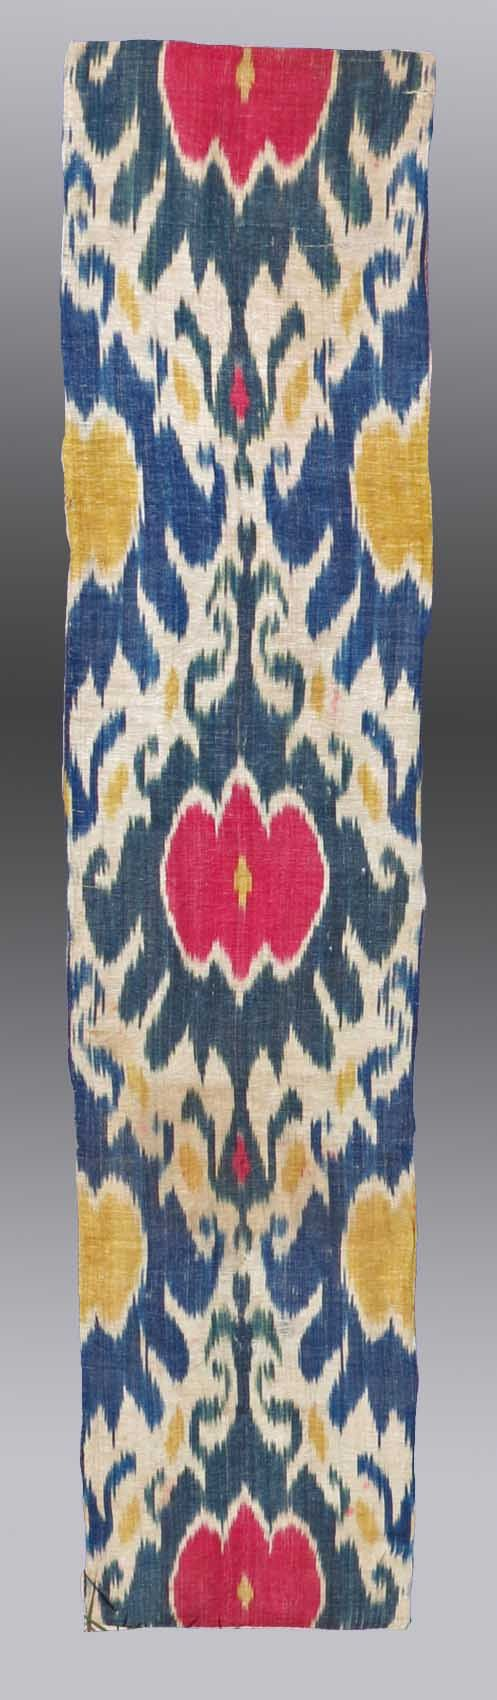 Vintage Antique Uzbek Ikat Panel/Wall Hanging by tcEclecticImages